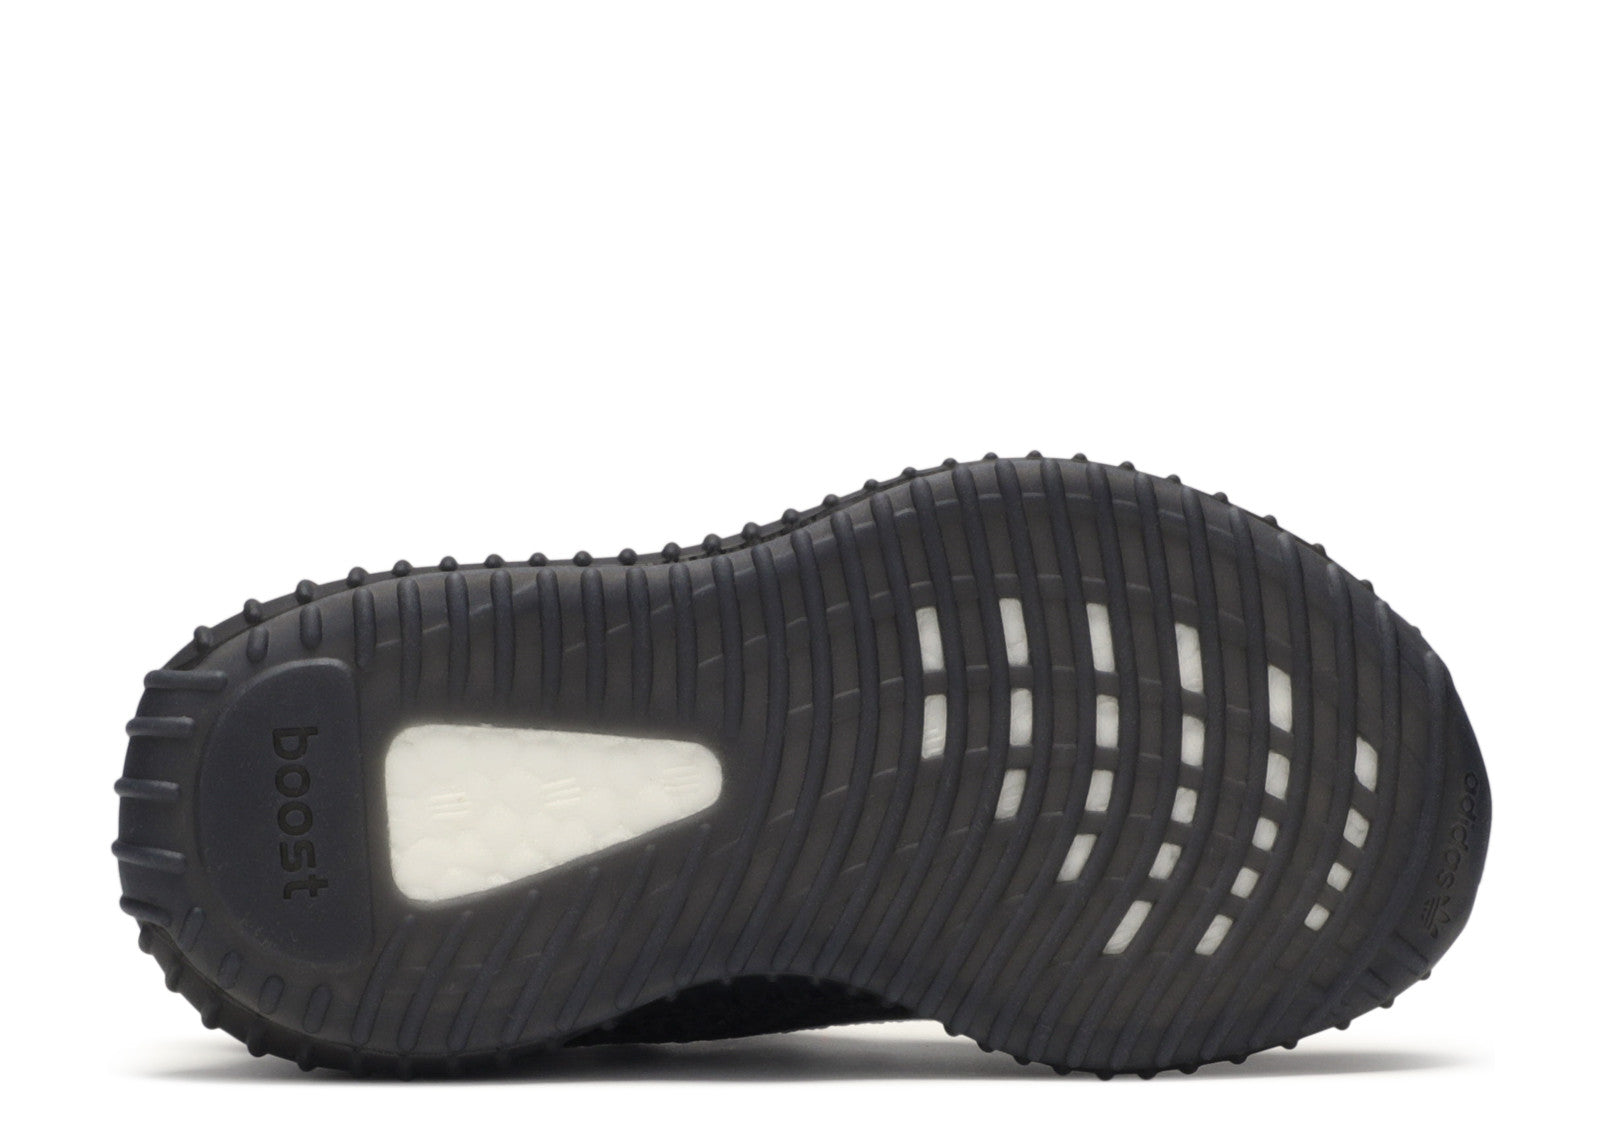 Adidas Yeezy Boost 350 V2 Infant 'Static Black'